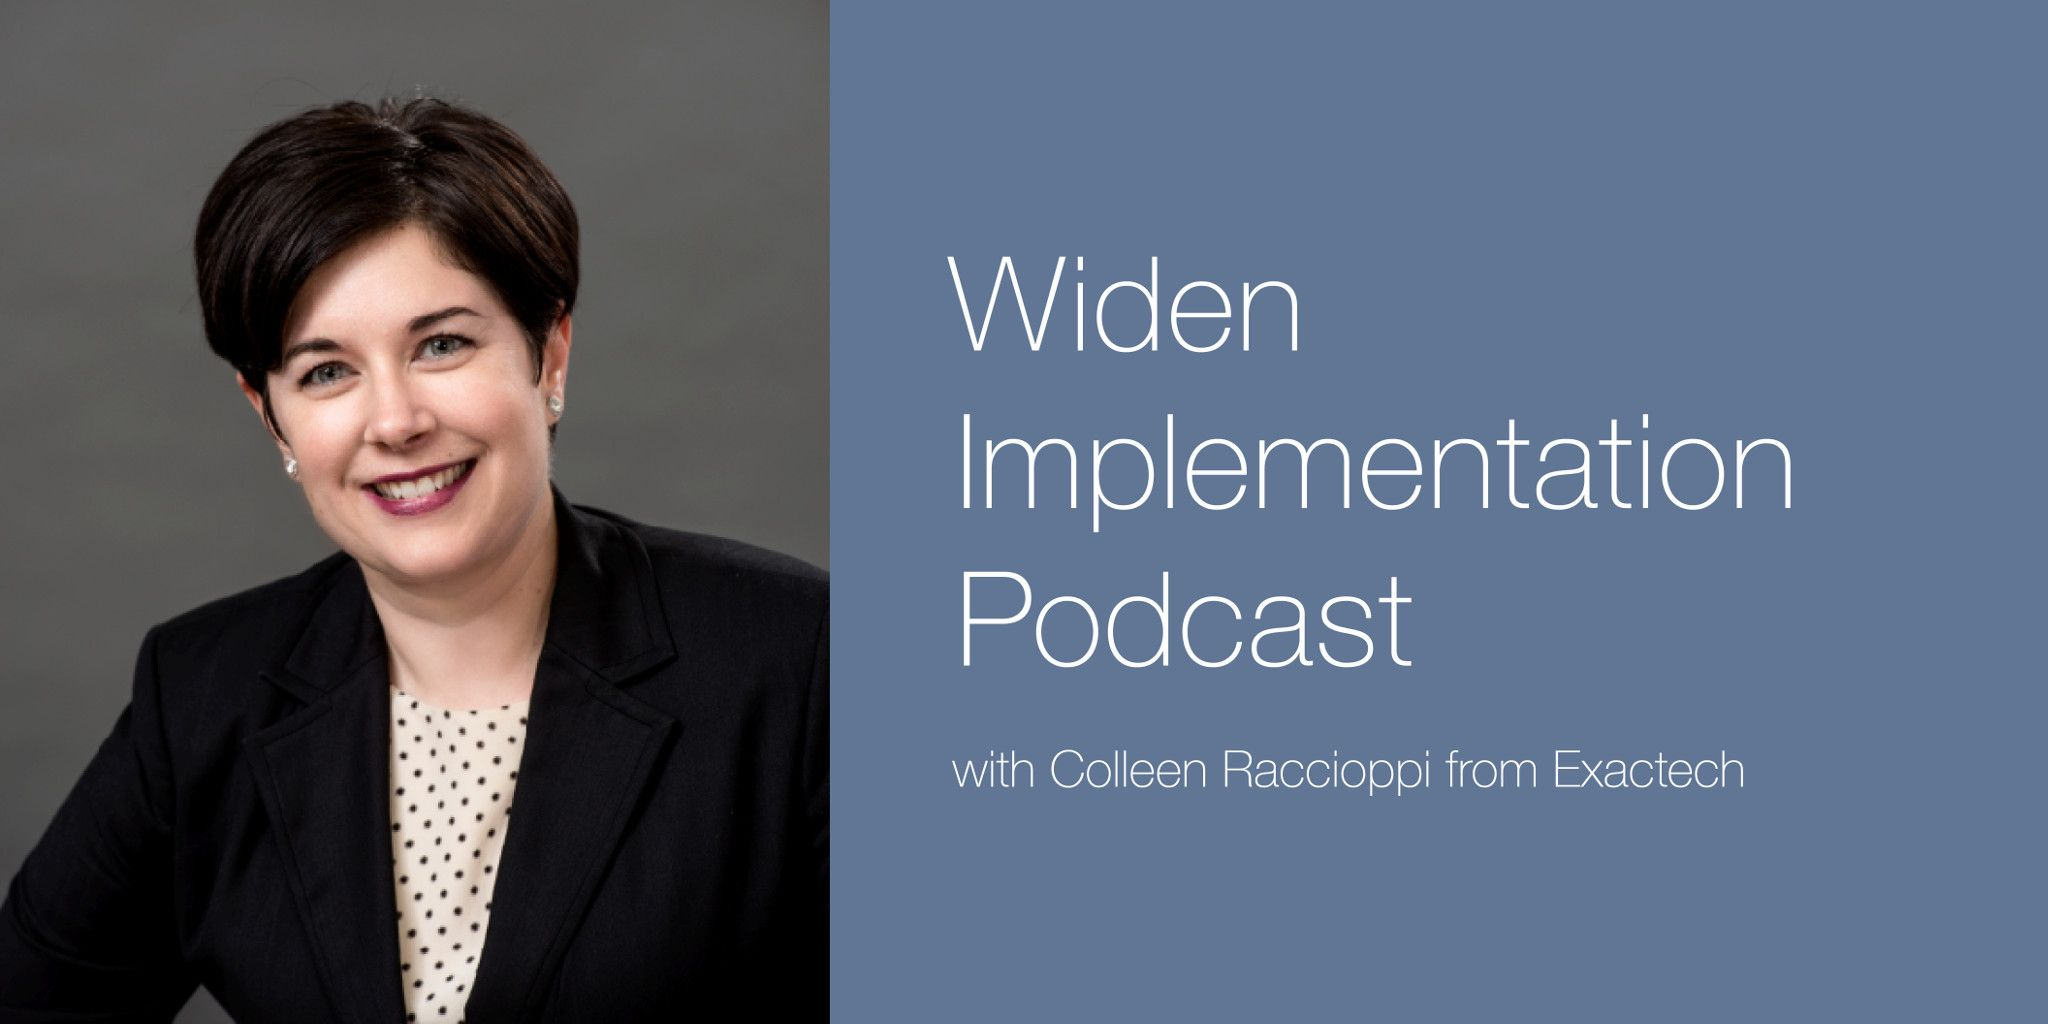 Colleen Raccioppi Widen Implementation Podcast